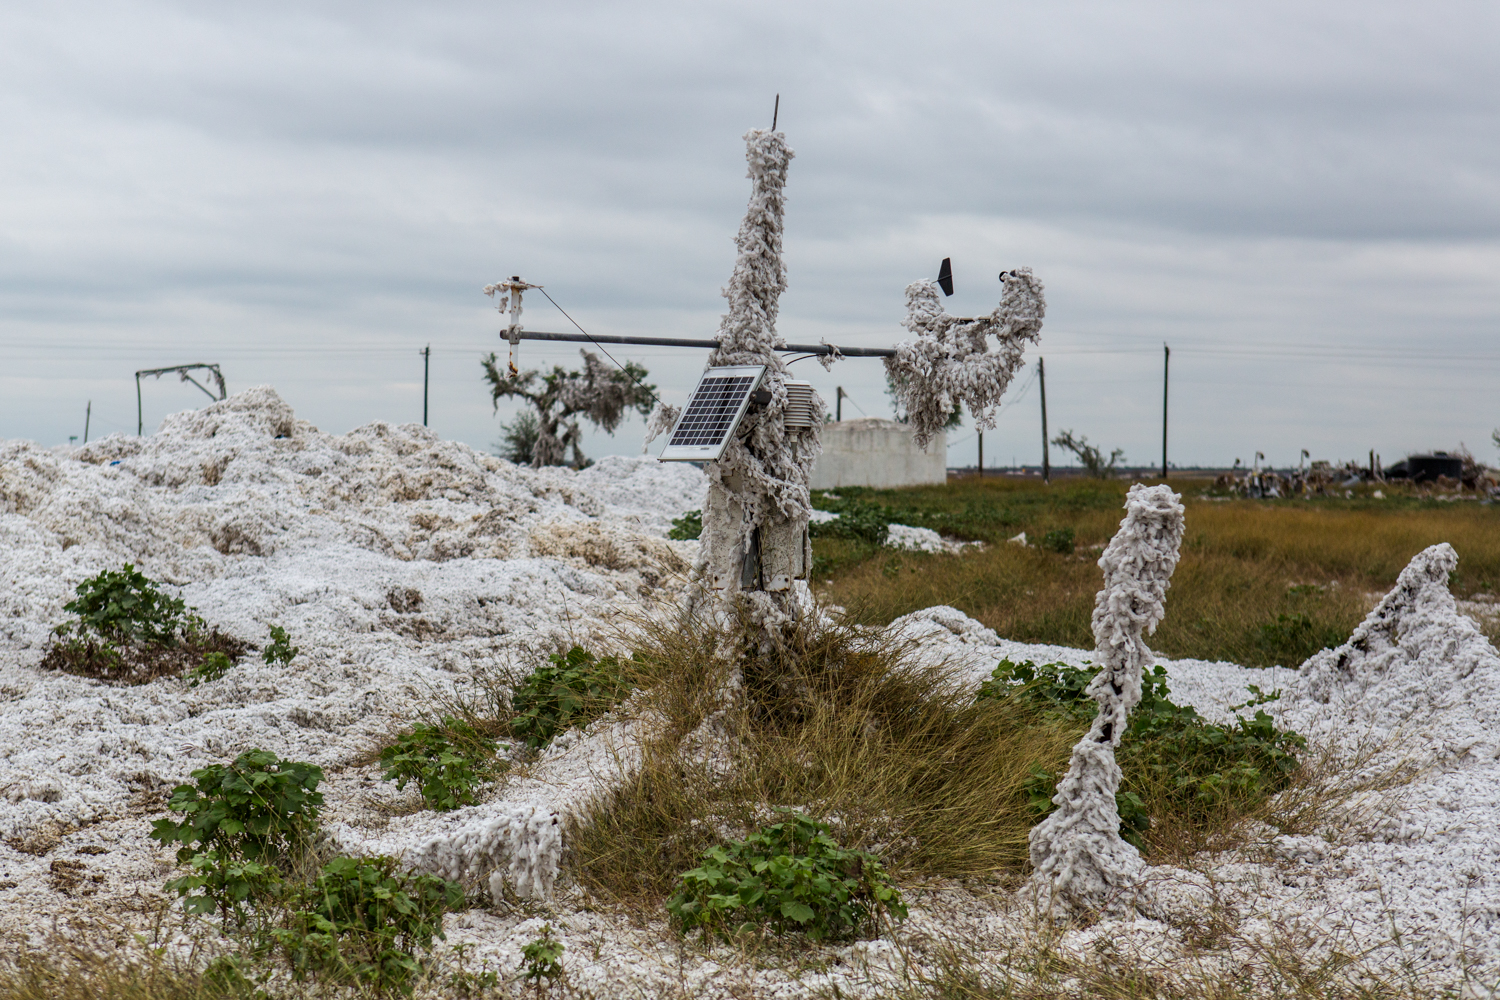 Cotton damaged from Hurricane Harvey blankets a weather station in Bayside, Texas. Nov. 9, 2017.